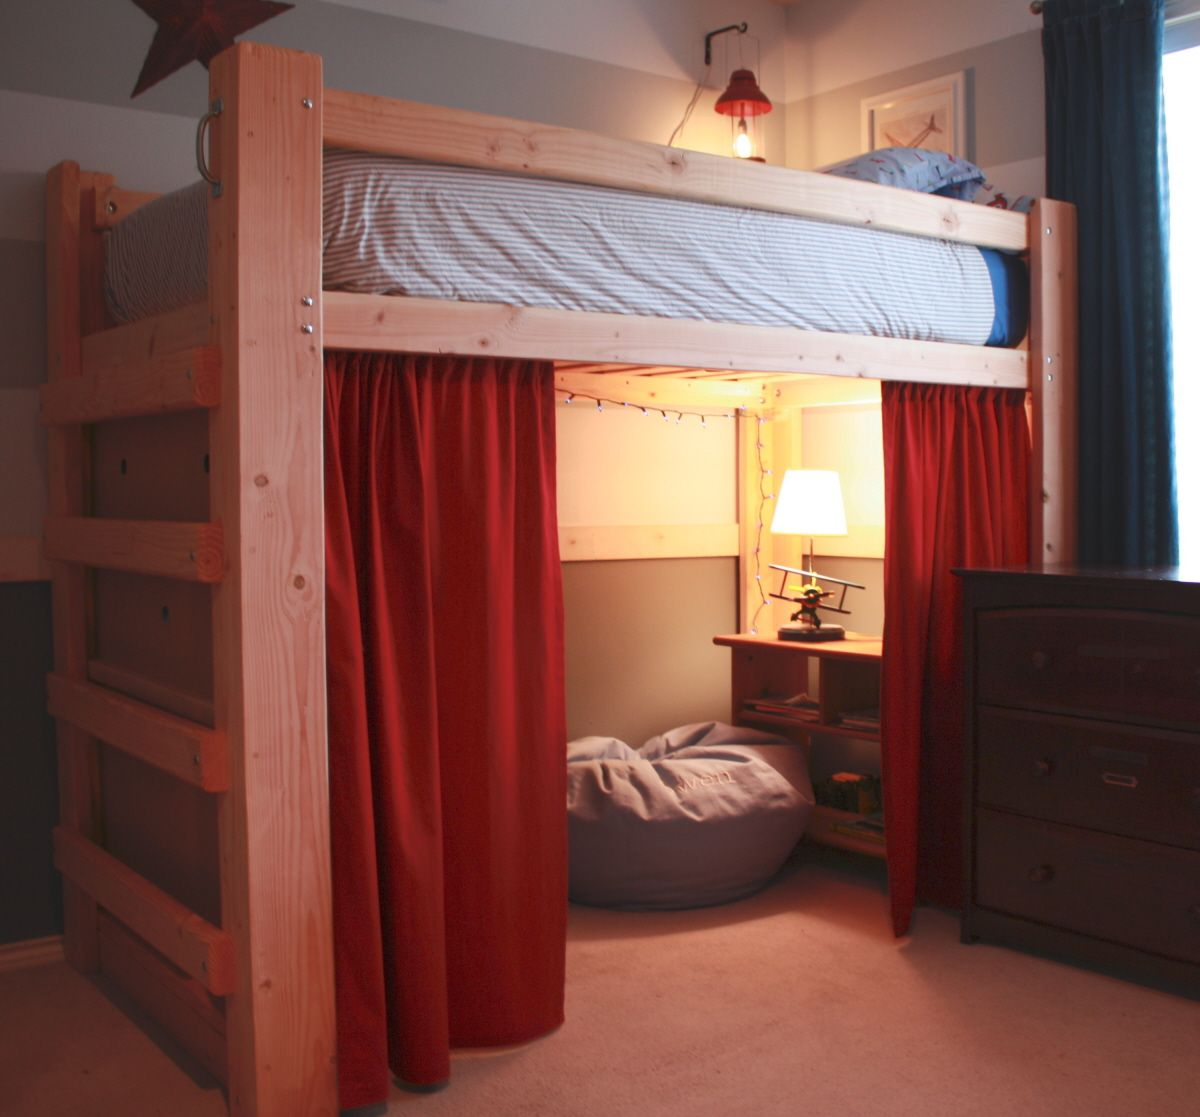 Queen loft bed ideas   Kids Forts  Bedrooms  Pinterest  Room Bedroom and Bed